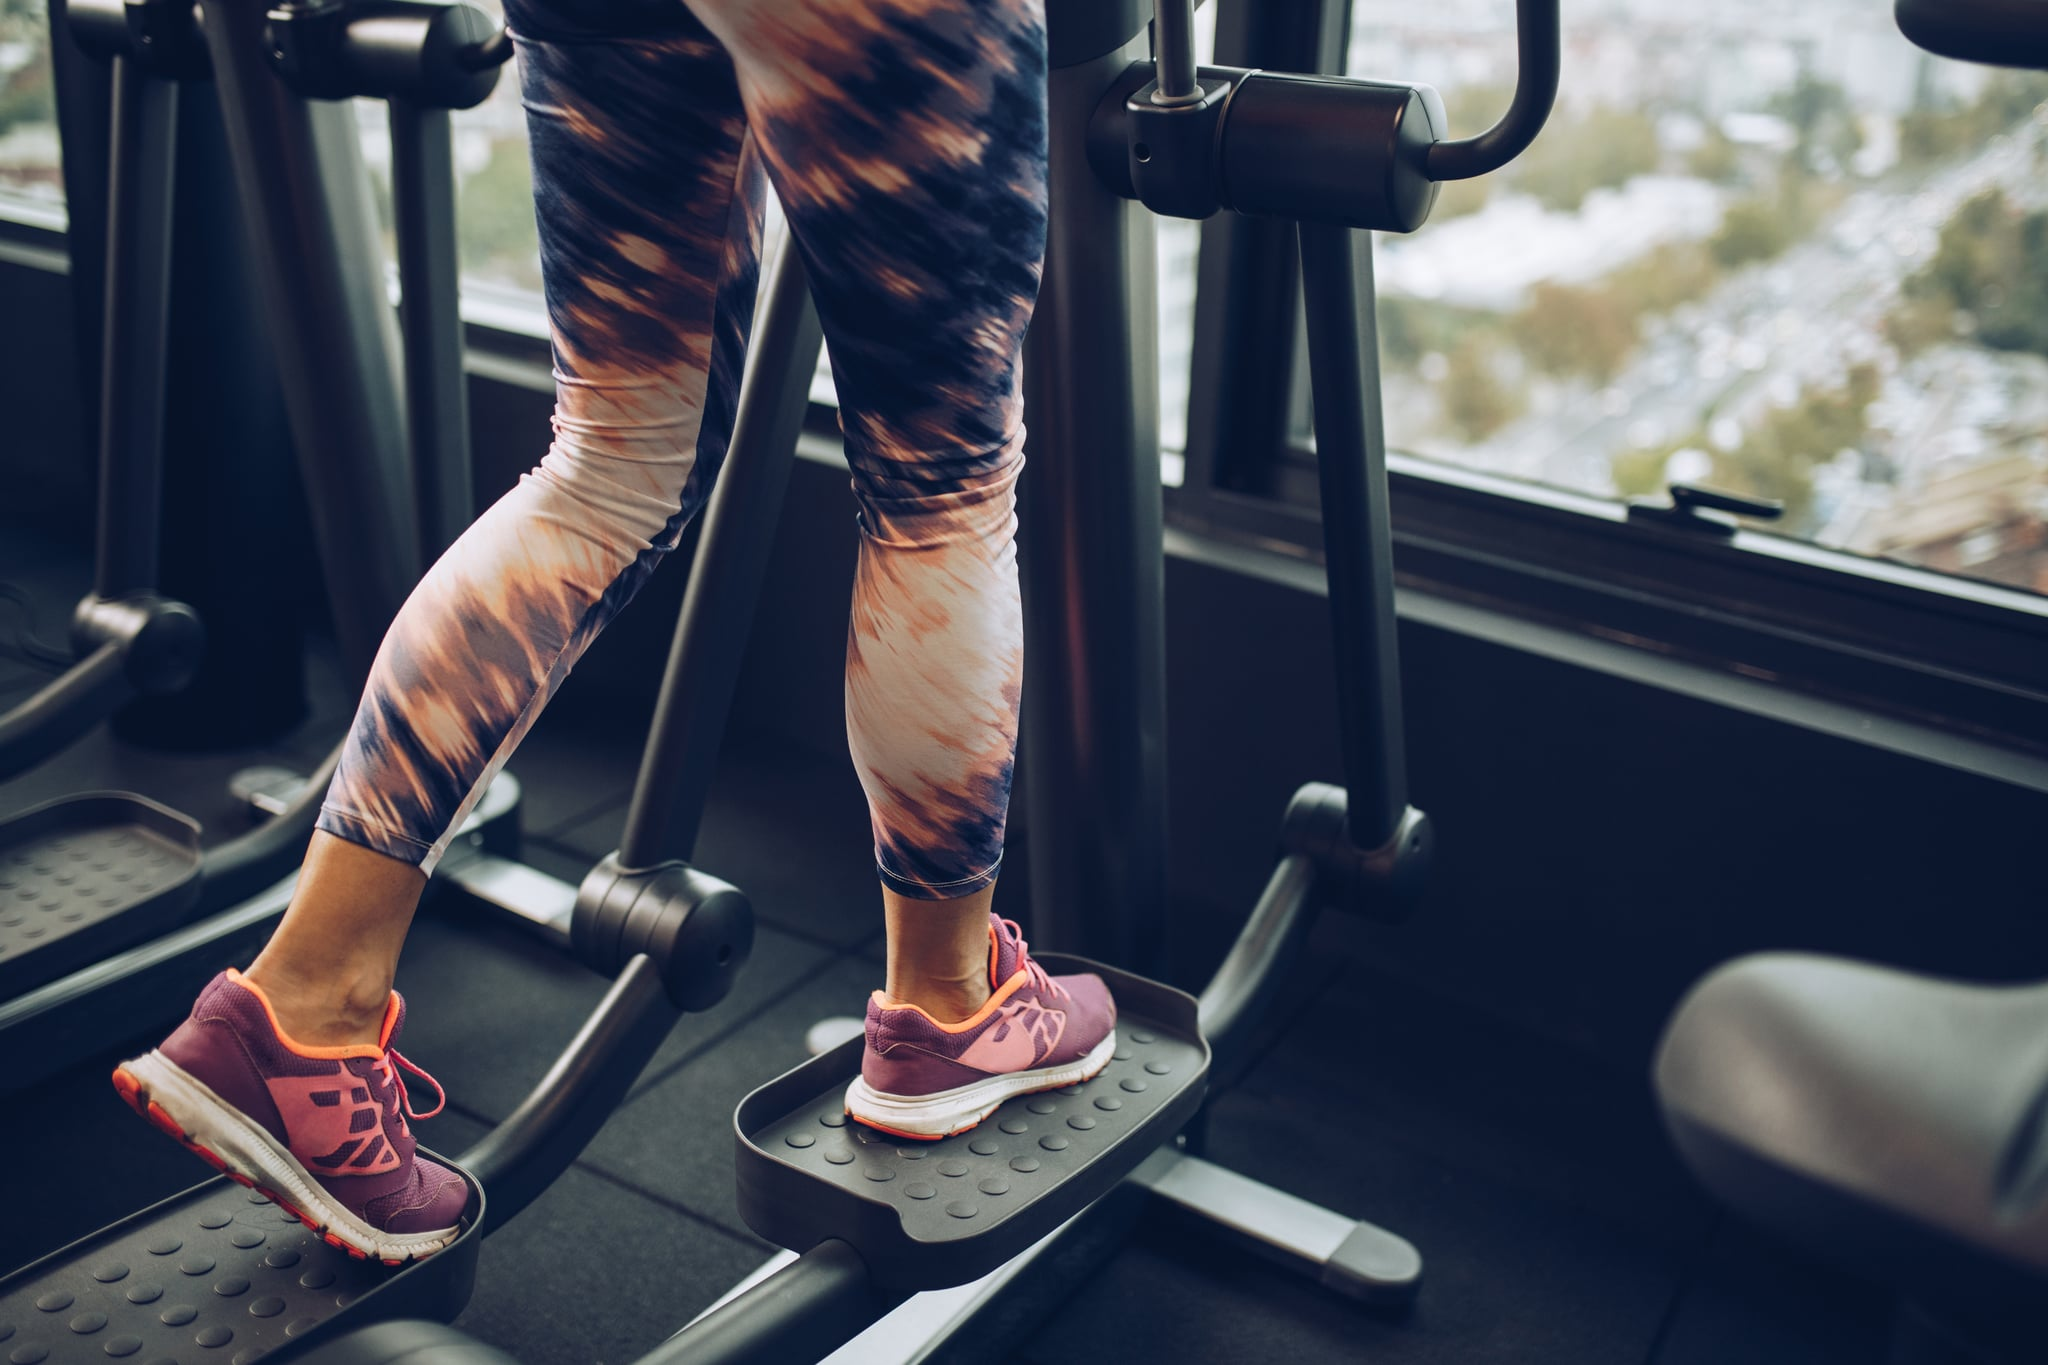 Unrecognisable athlete's legs during warm up on a cross trainer in a gym.